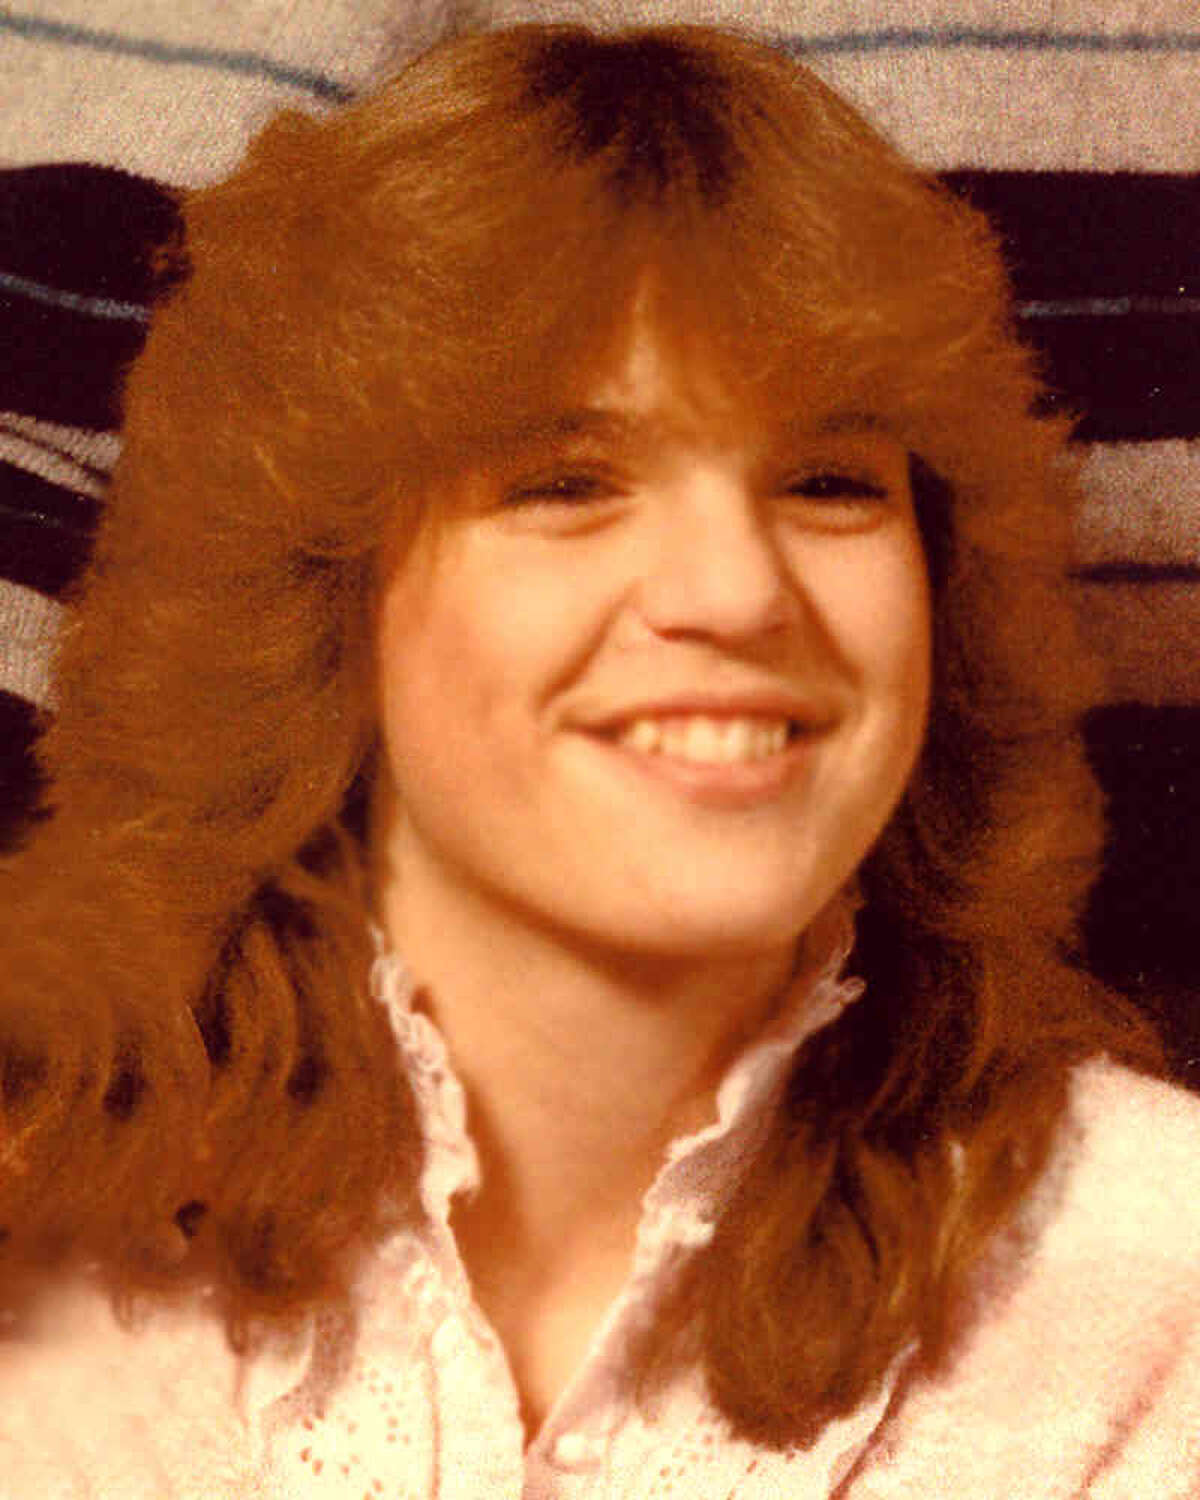 Tammie McCormick was 13 when she disappeared in Saratoga Springs on April 29, 1986. (Courtesy: National Center for Missing & Exploited Children)